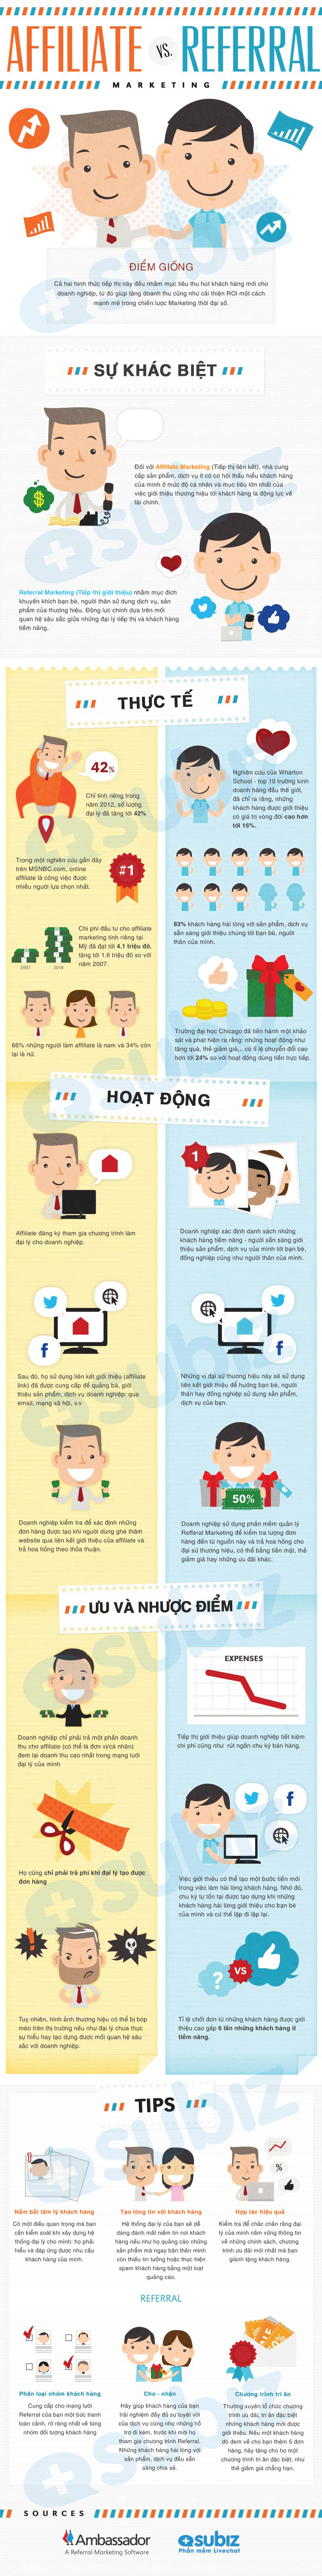 Affiliate-Vs-Referral-Marketing-Infographic-infographicsmania.